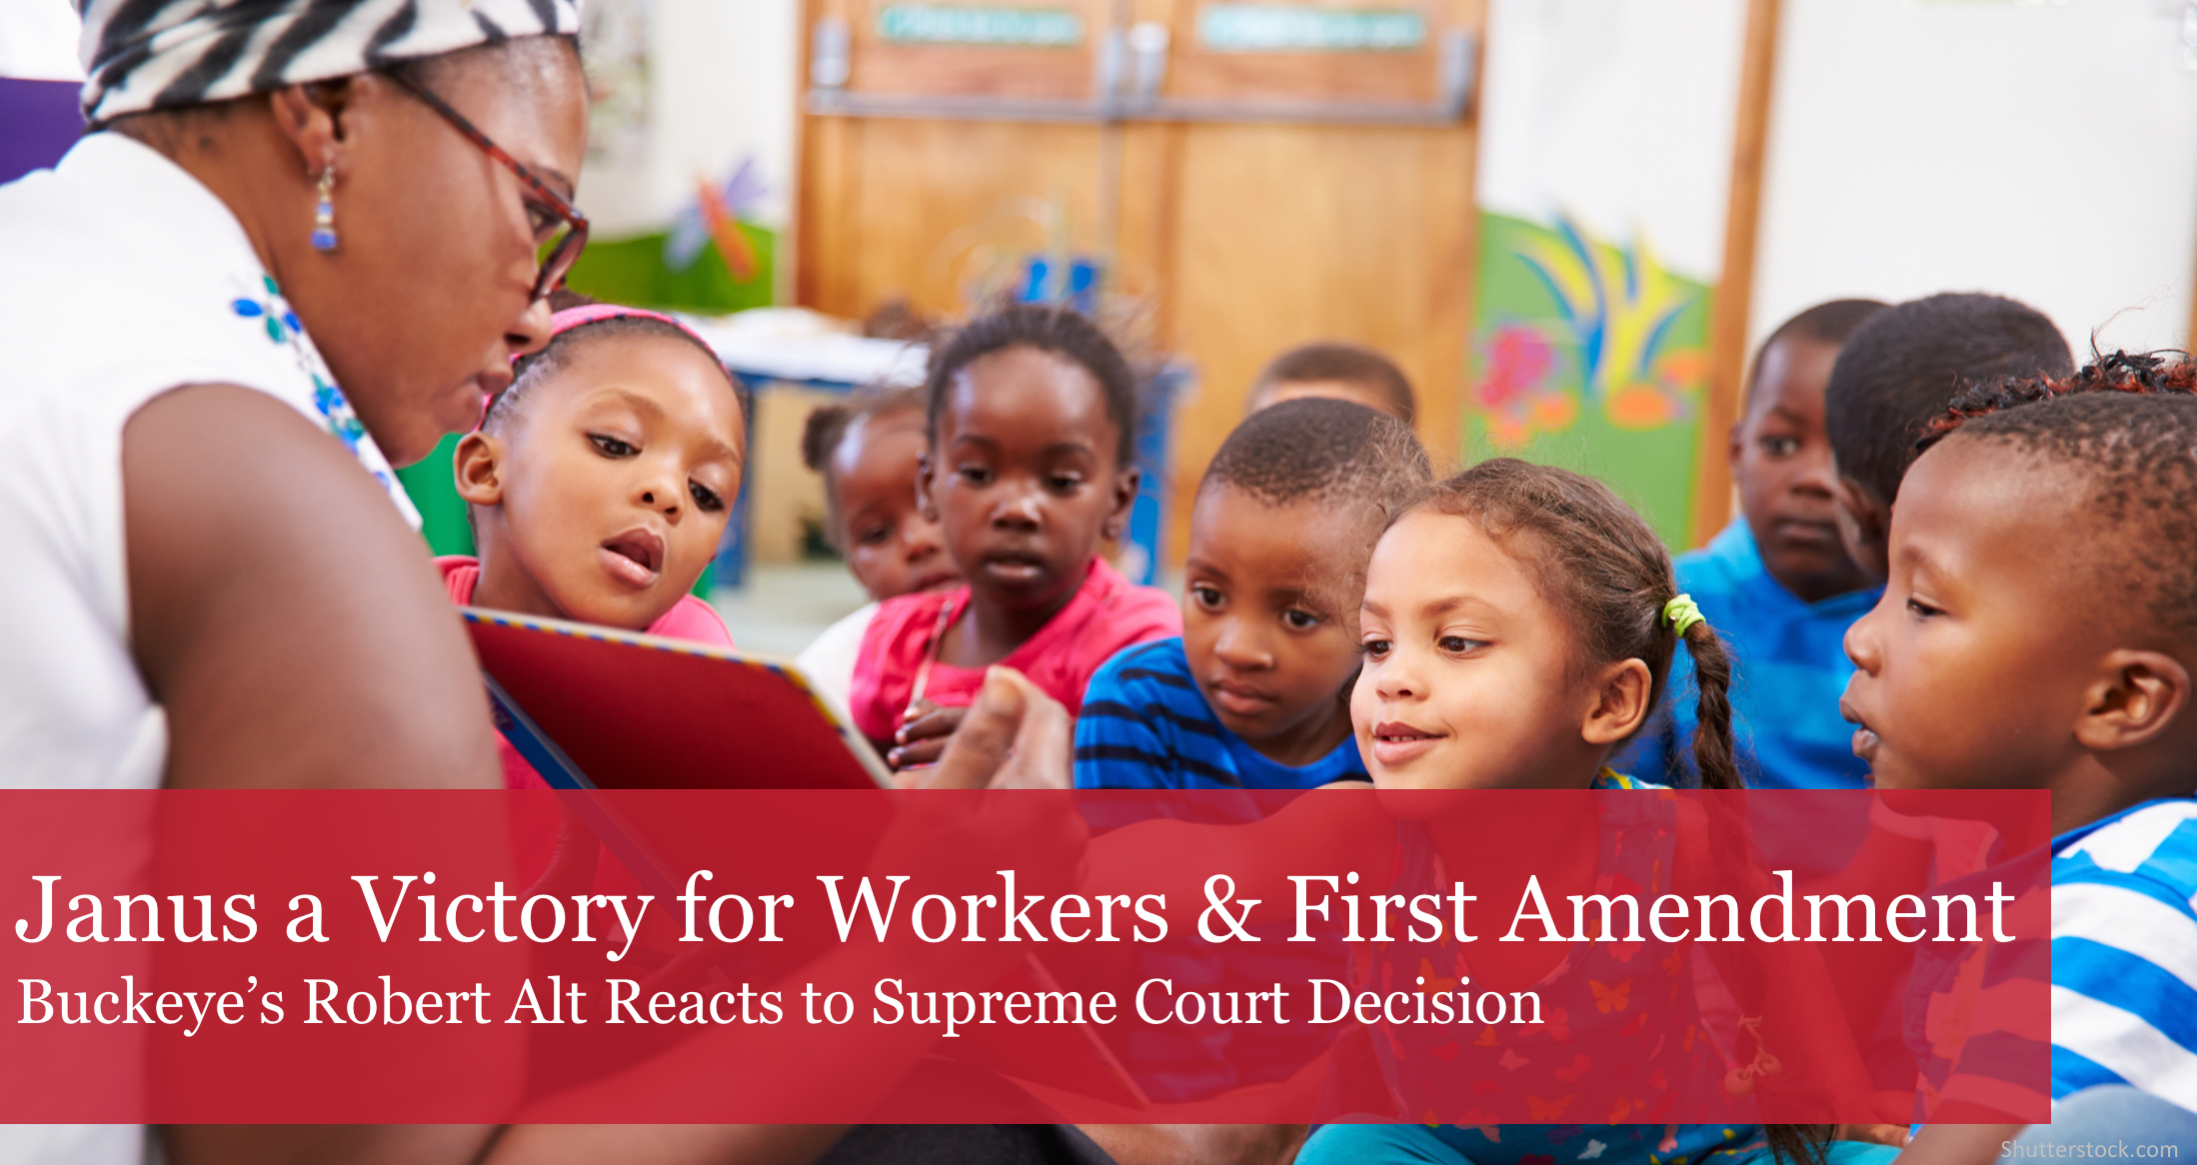 The Buckeye Institute's President and CEO Robert Alt: Janus v. AFSCME Decision a Victory for Workers and First Amendment